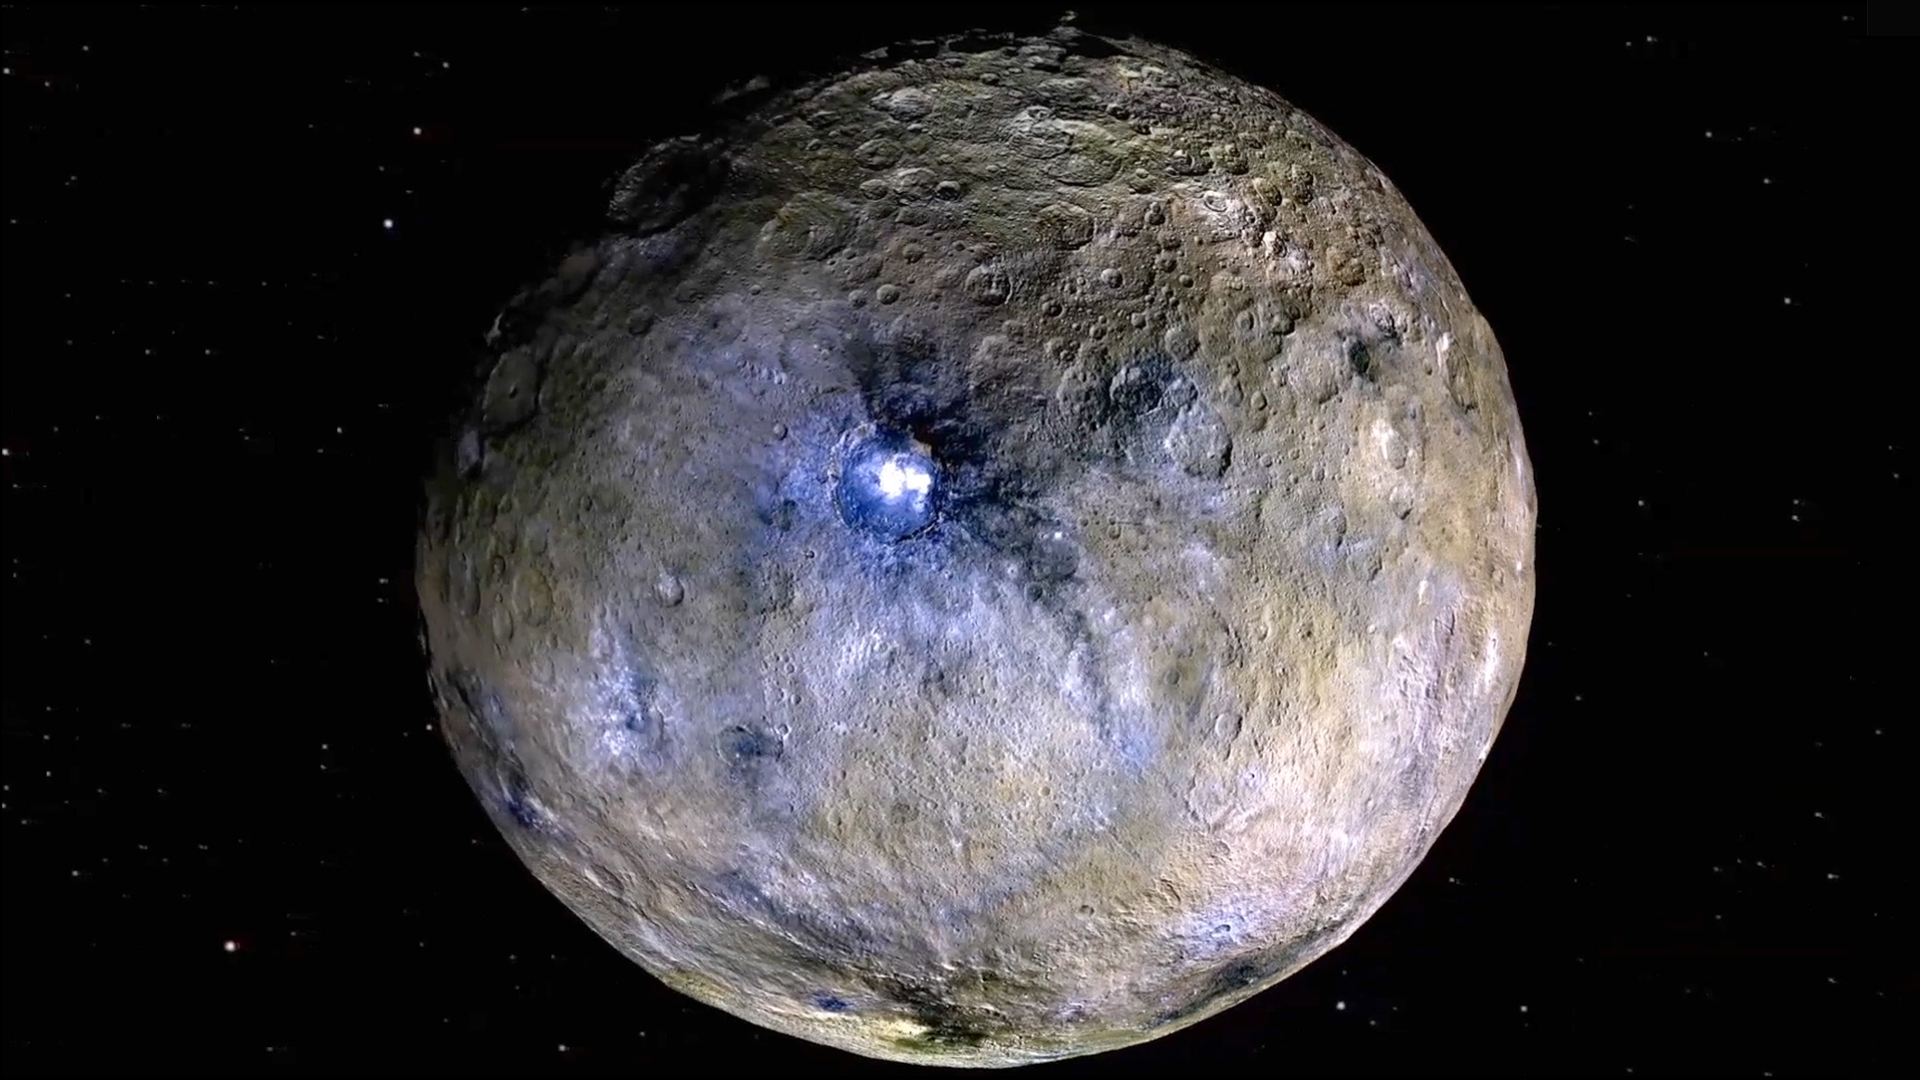 Salty dwarf planet Ceres could be hiding an ocean